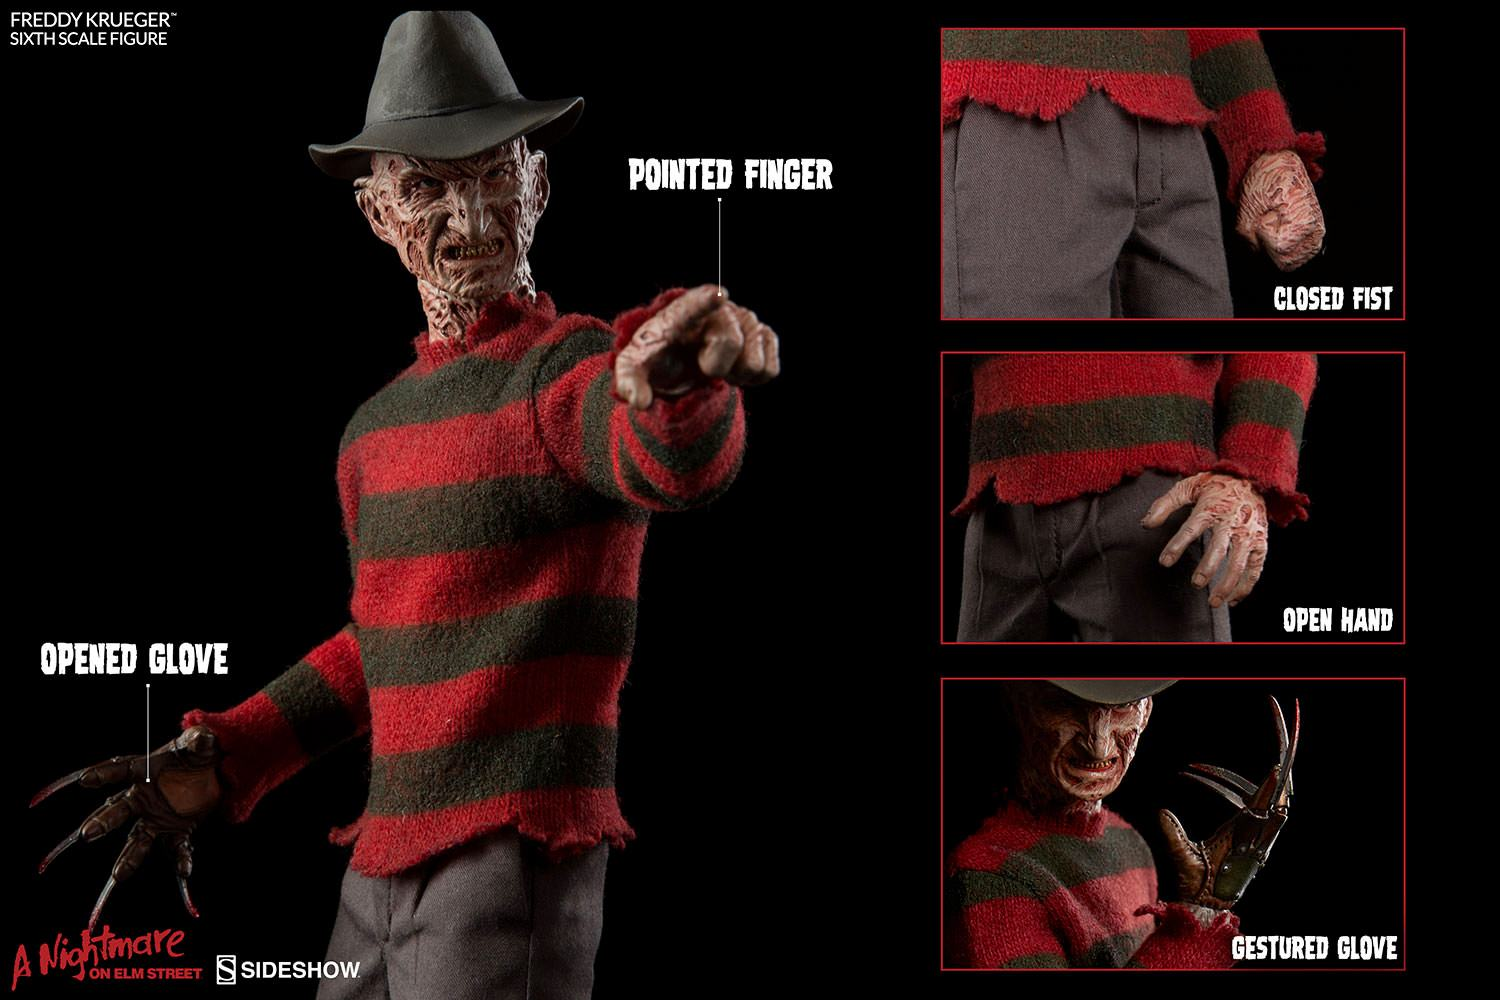 freddy-krueger-sixth-scale-figure-sideshow-08